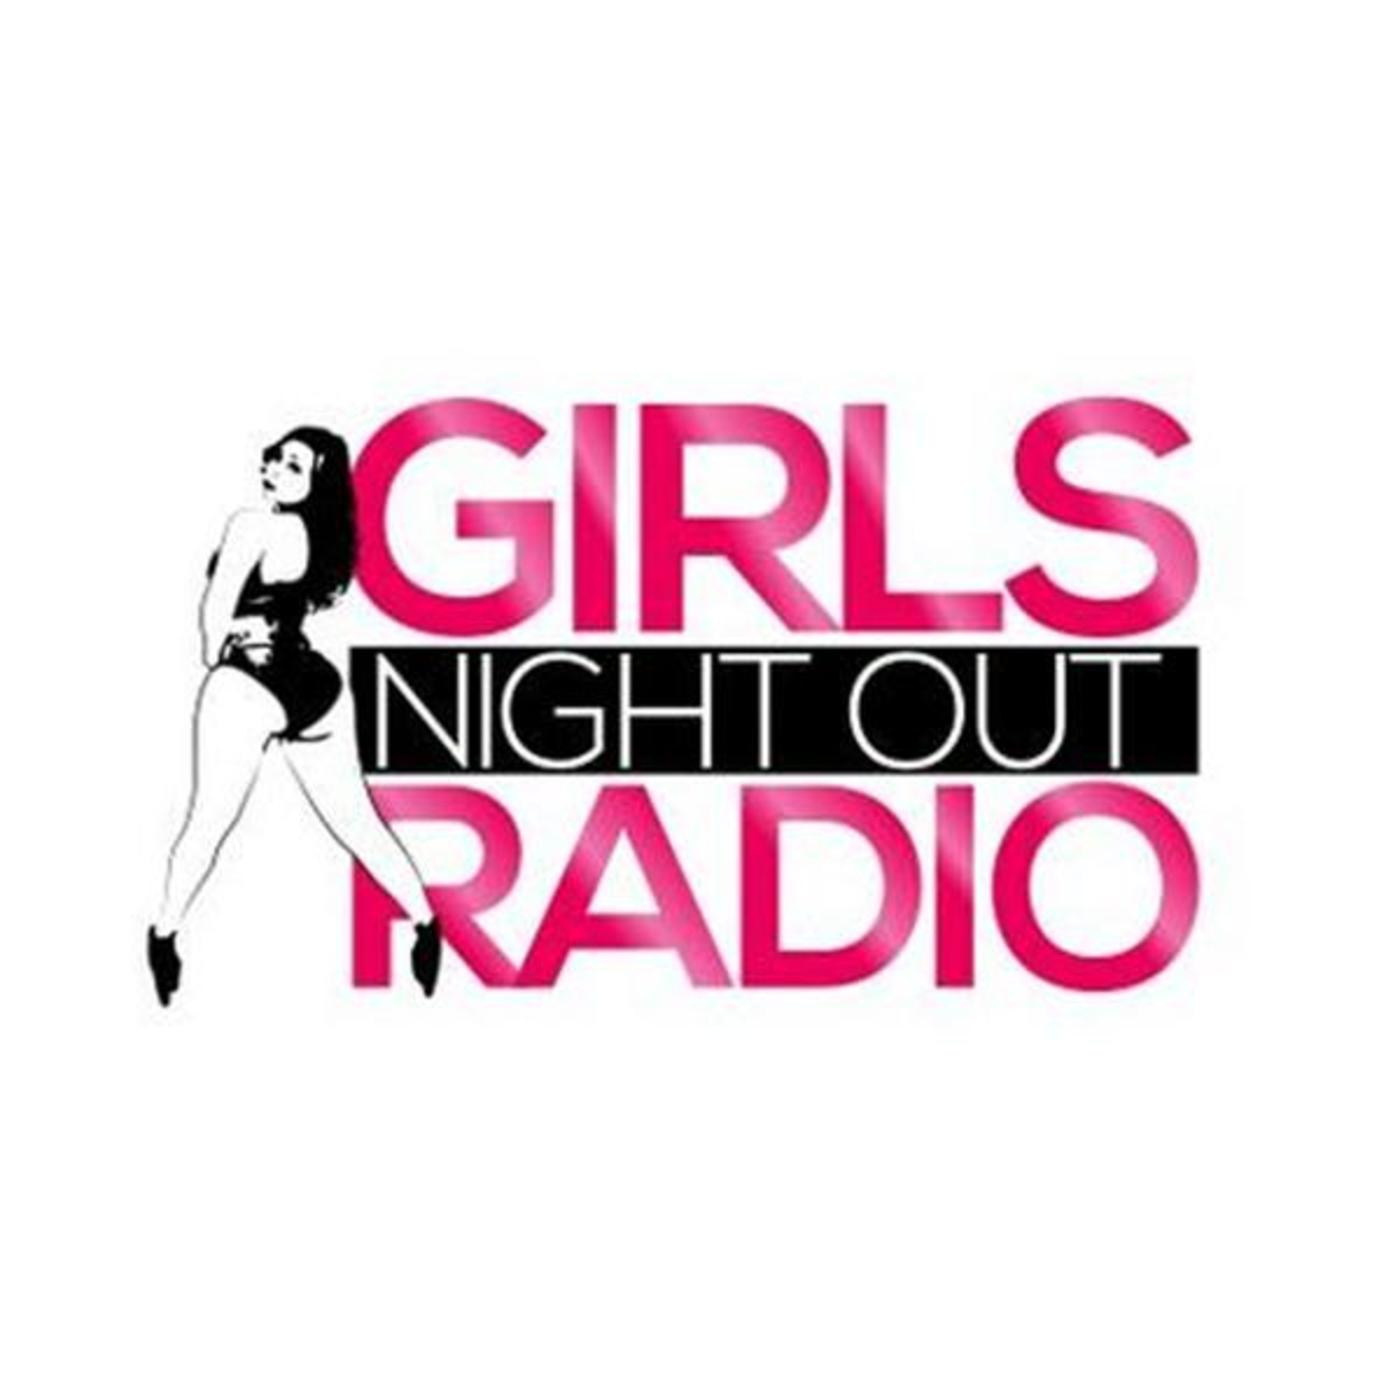 GIRLS NIGHT OUT RADIO